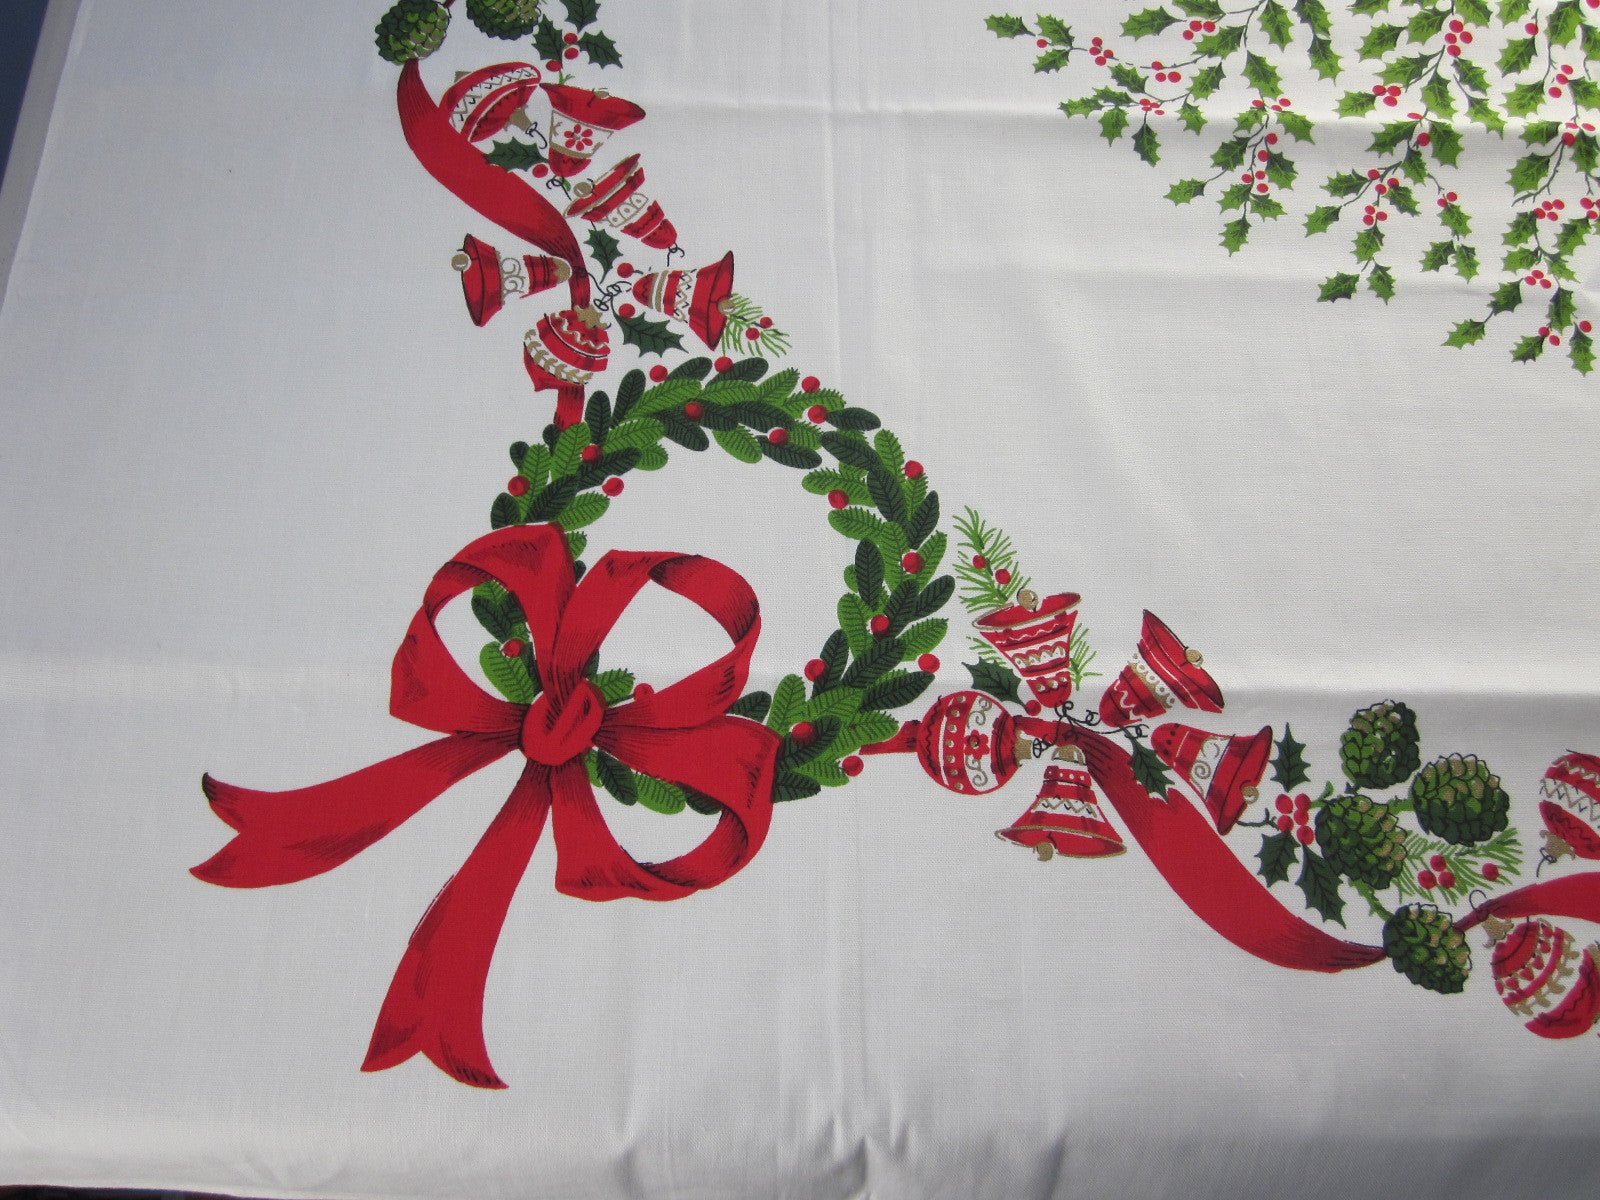 Christmas Centerpiece Wreaths MWT Vintage Printed Tablecloth (52 X 50)